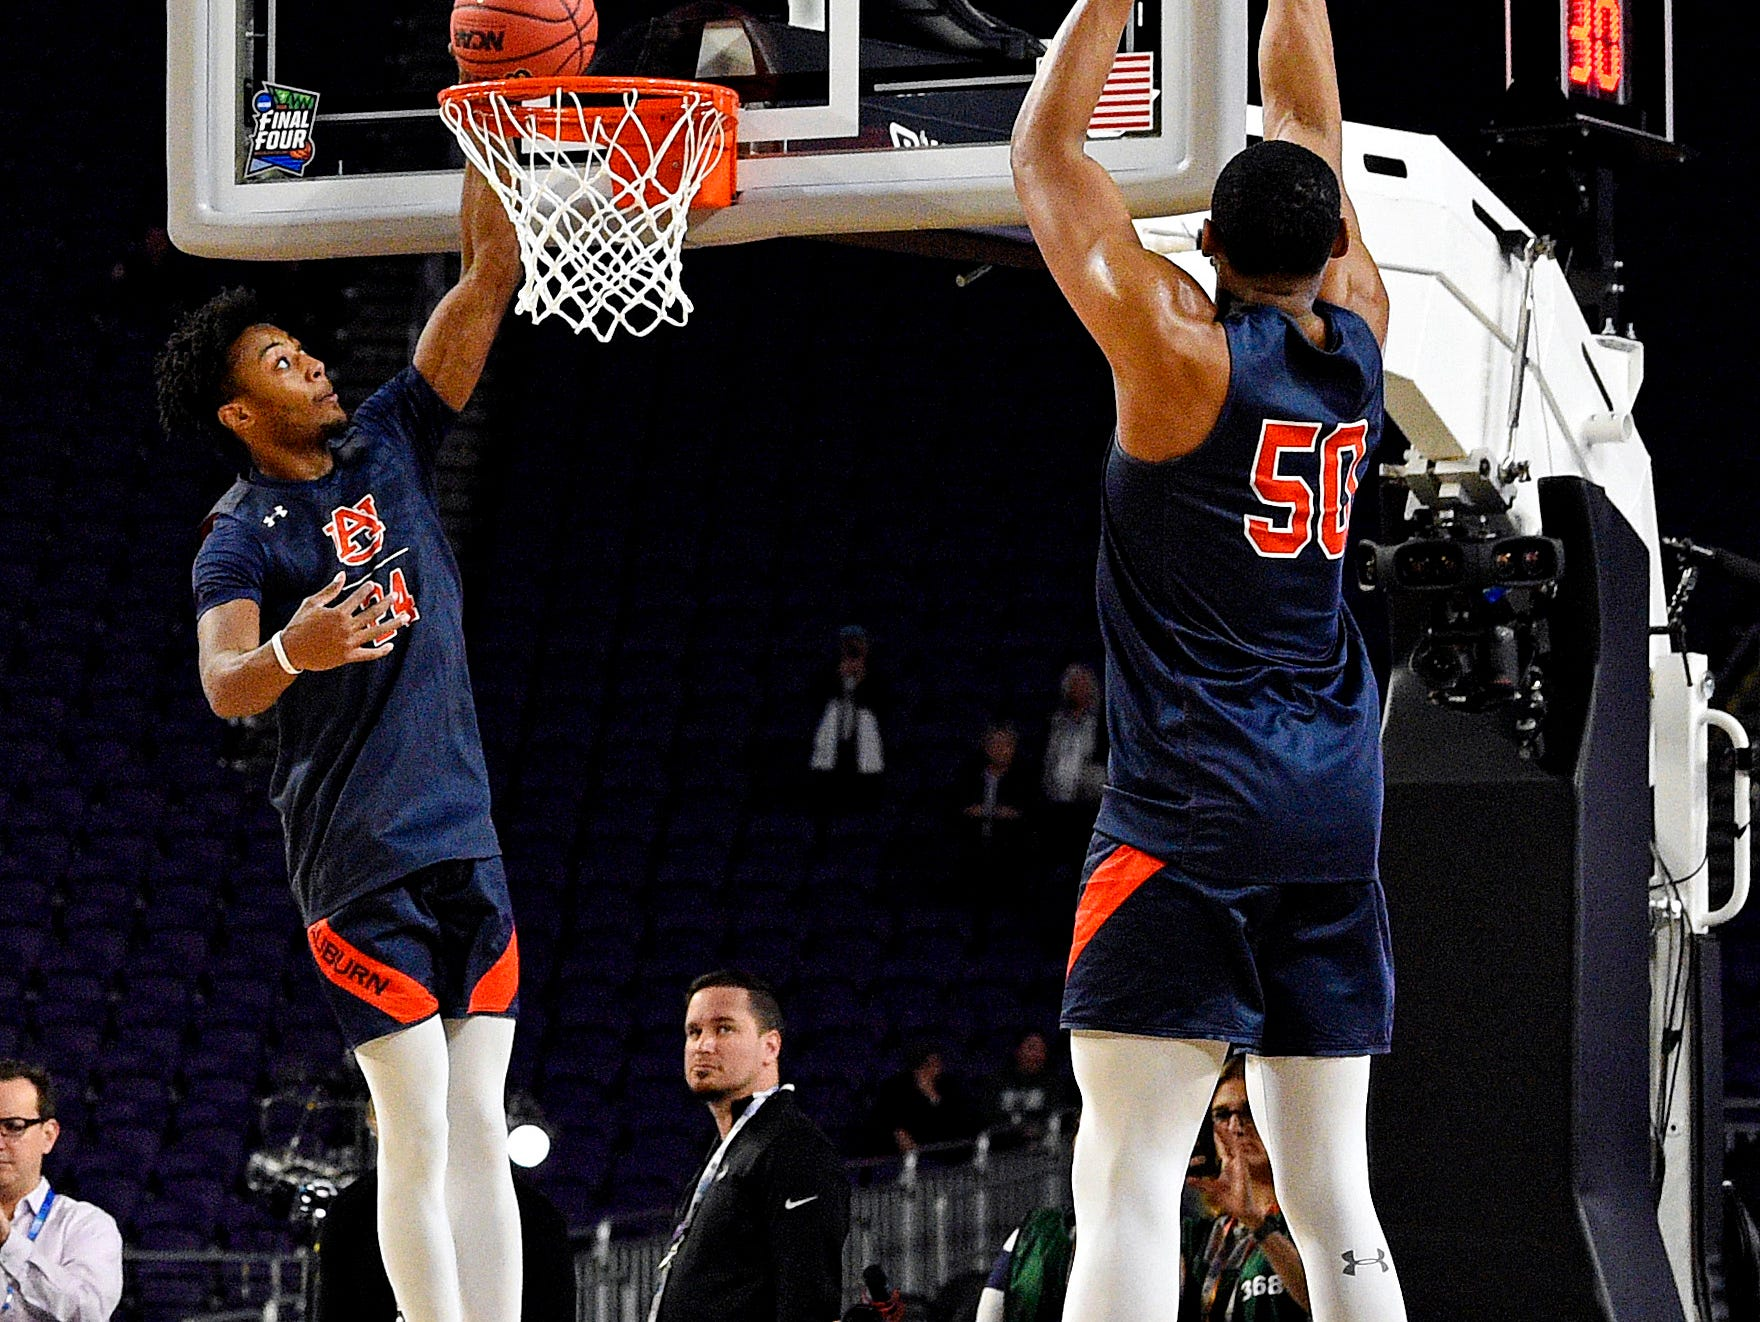 Apr 5, 2019; Minneapolis, MN, USA; Auburn Tigers forward Anfernee McLemore (24) and Auburn Tigers center Austin Wiley (50) shoots the ball during practice for the 2019 men's Final Four at US Bank Stadium. Mandatory Credit: Bob Donnan-USA TODAY Sports